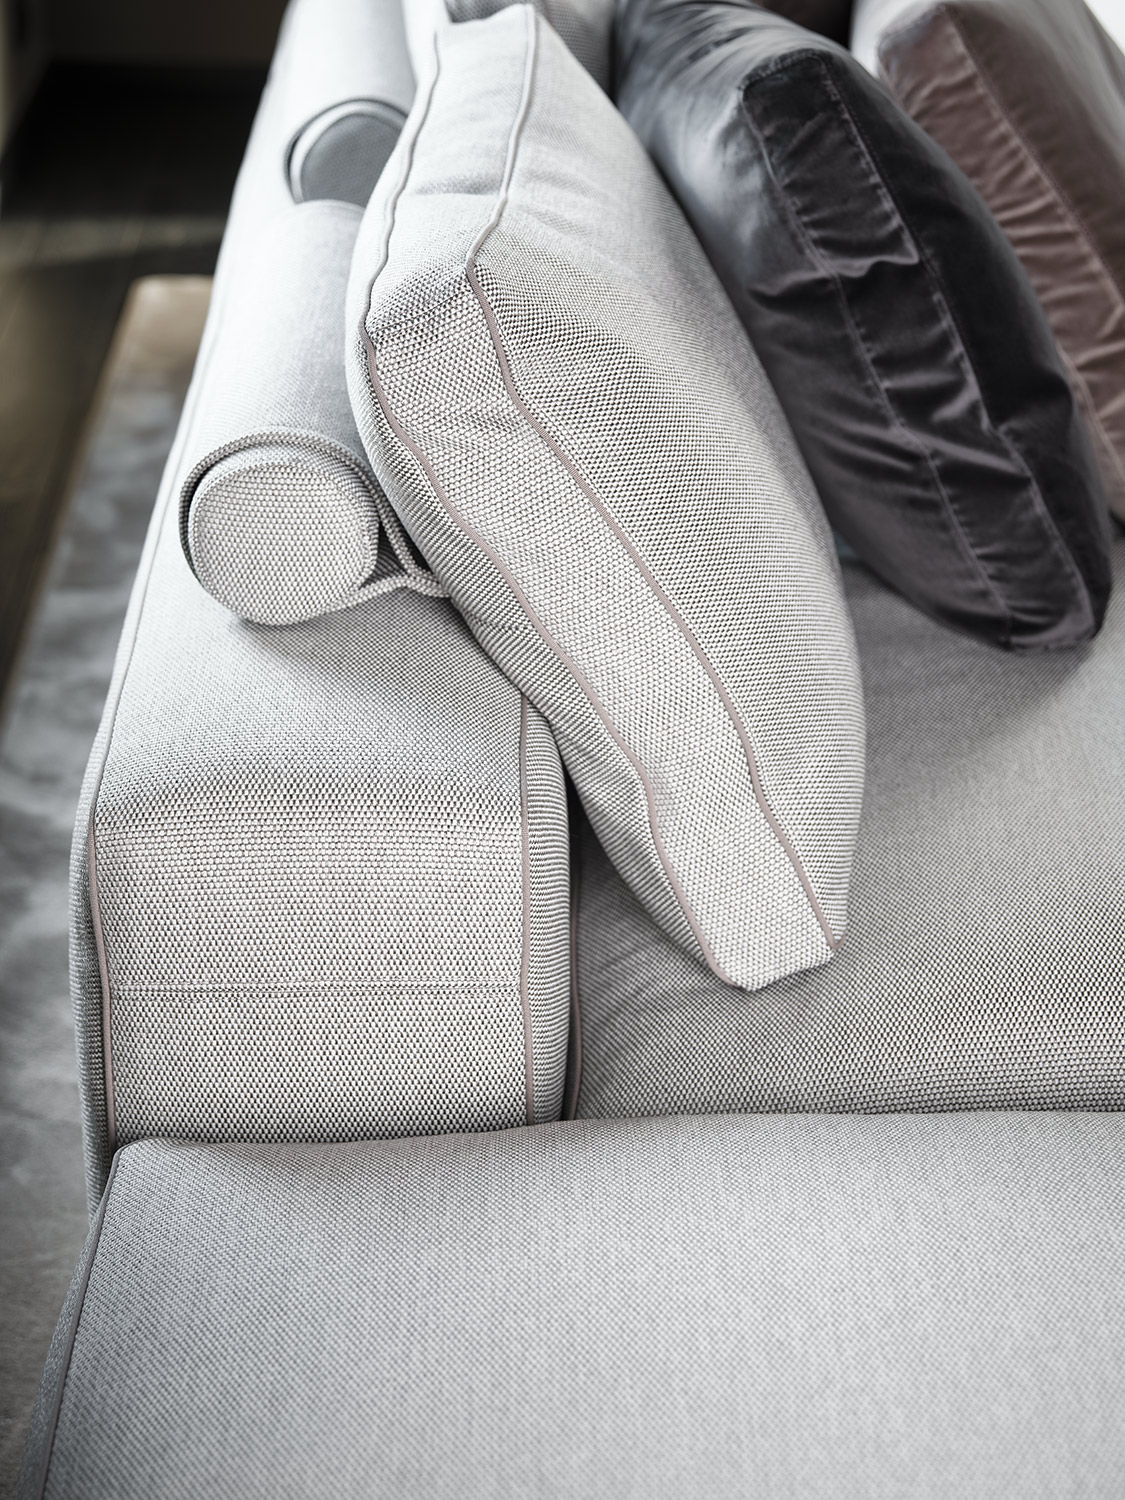 Mussi sofa Sinfonia cushion detail and back